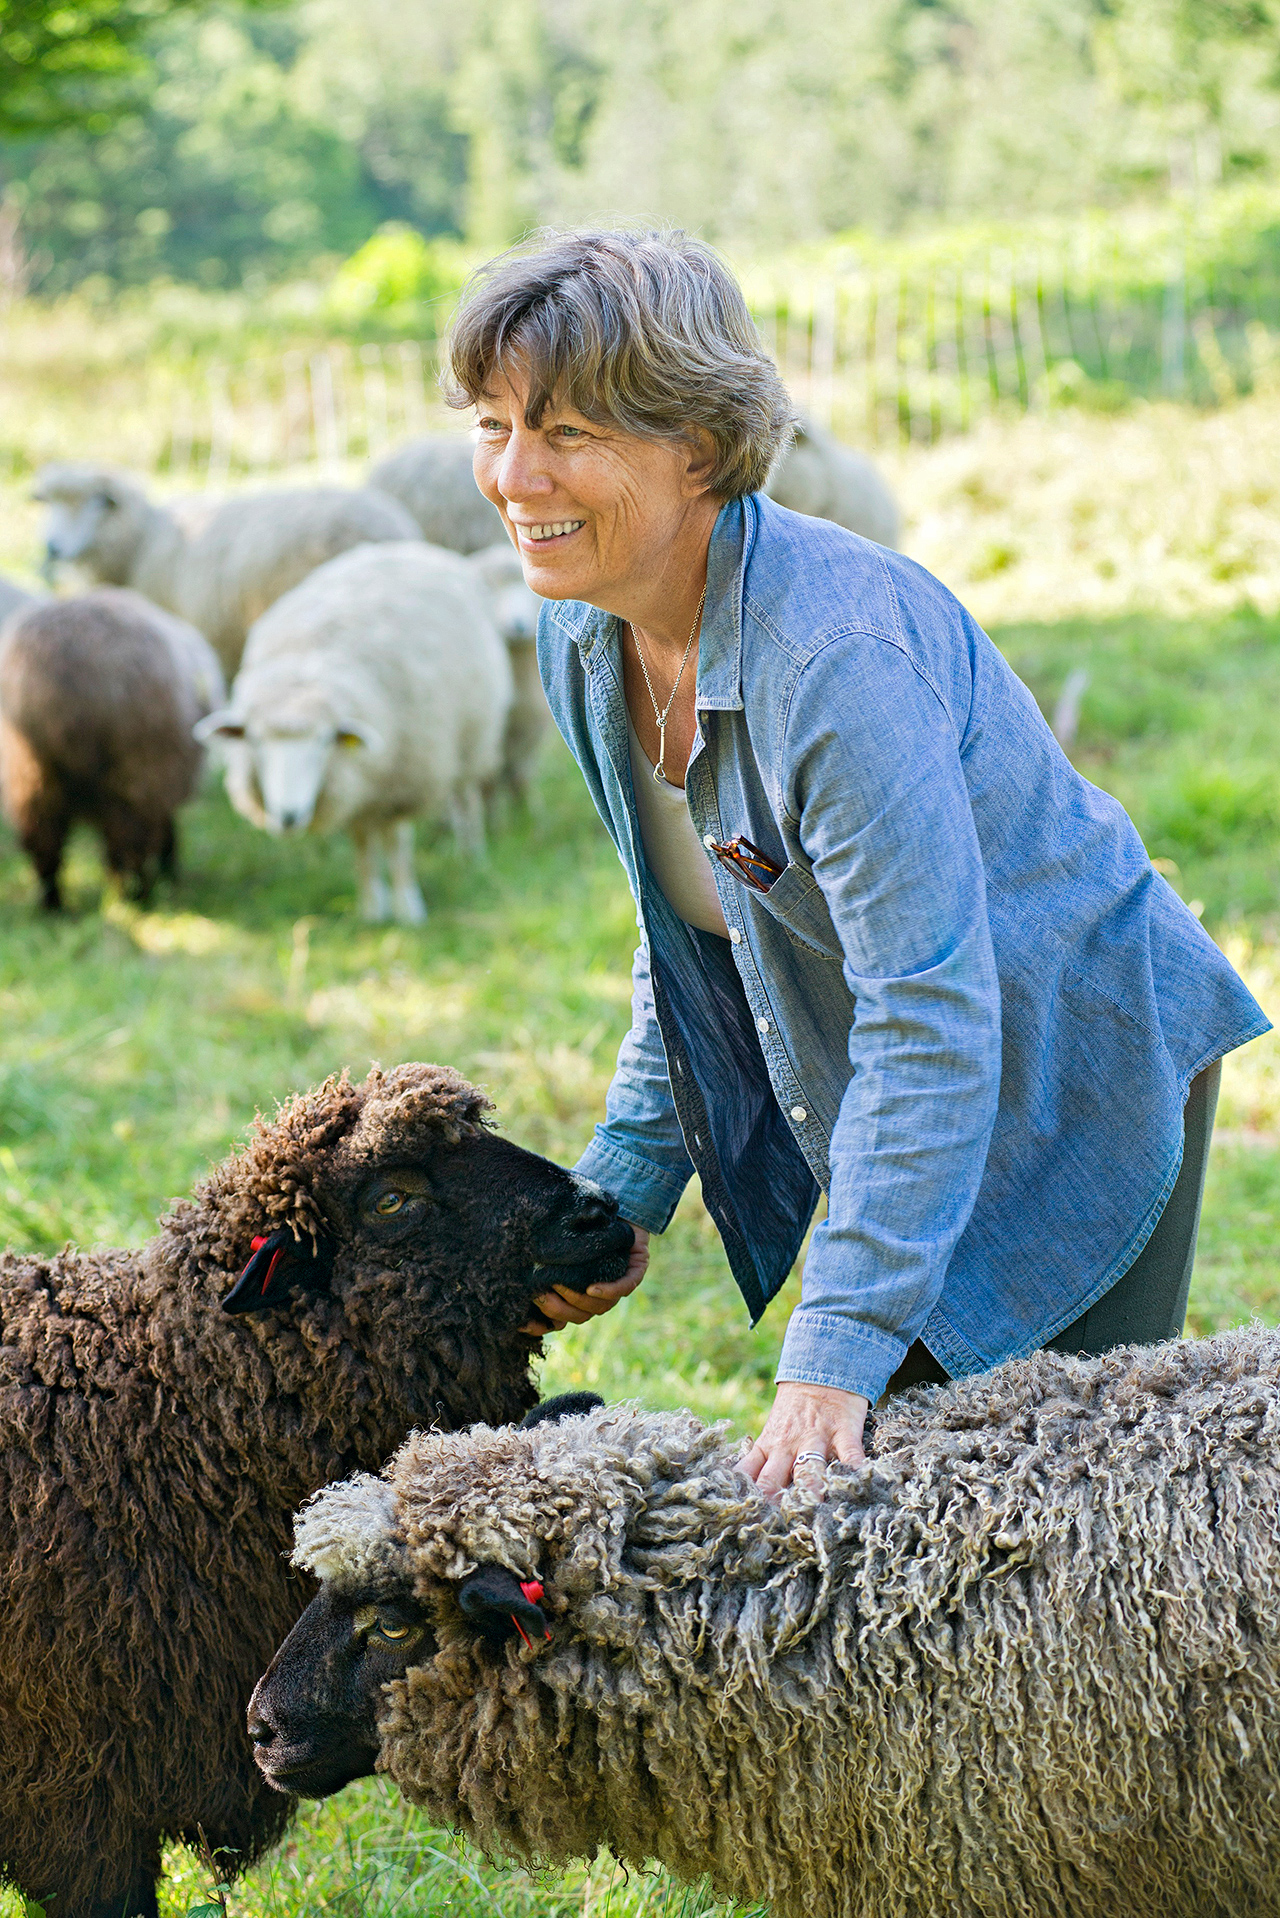 woman standing next to sheep in pasture